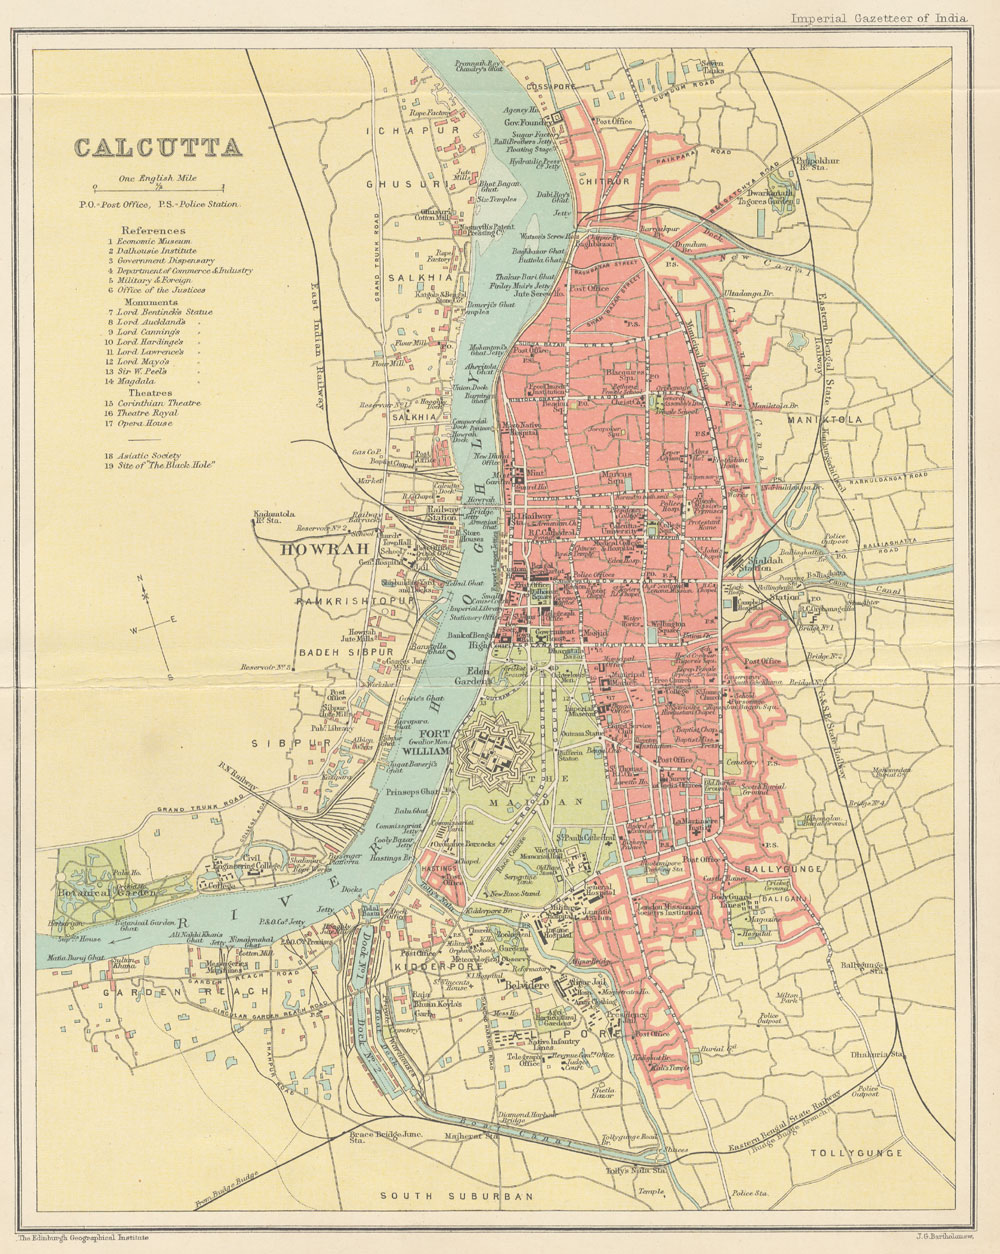 File:Map of Calcutta from The Imperial Gazetteer of India (1907-1909 ...